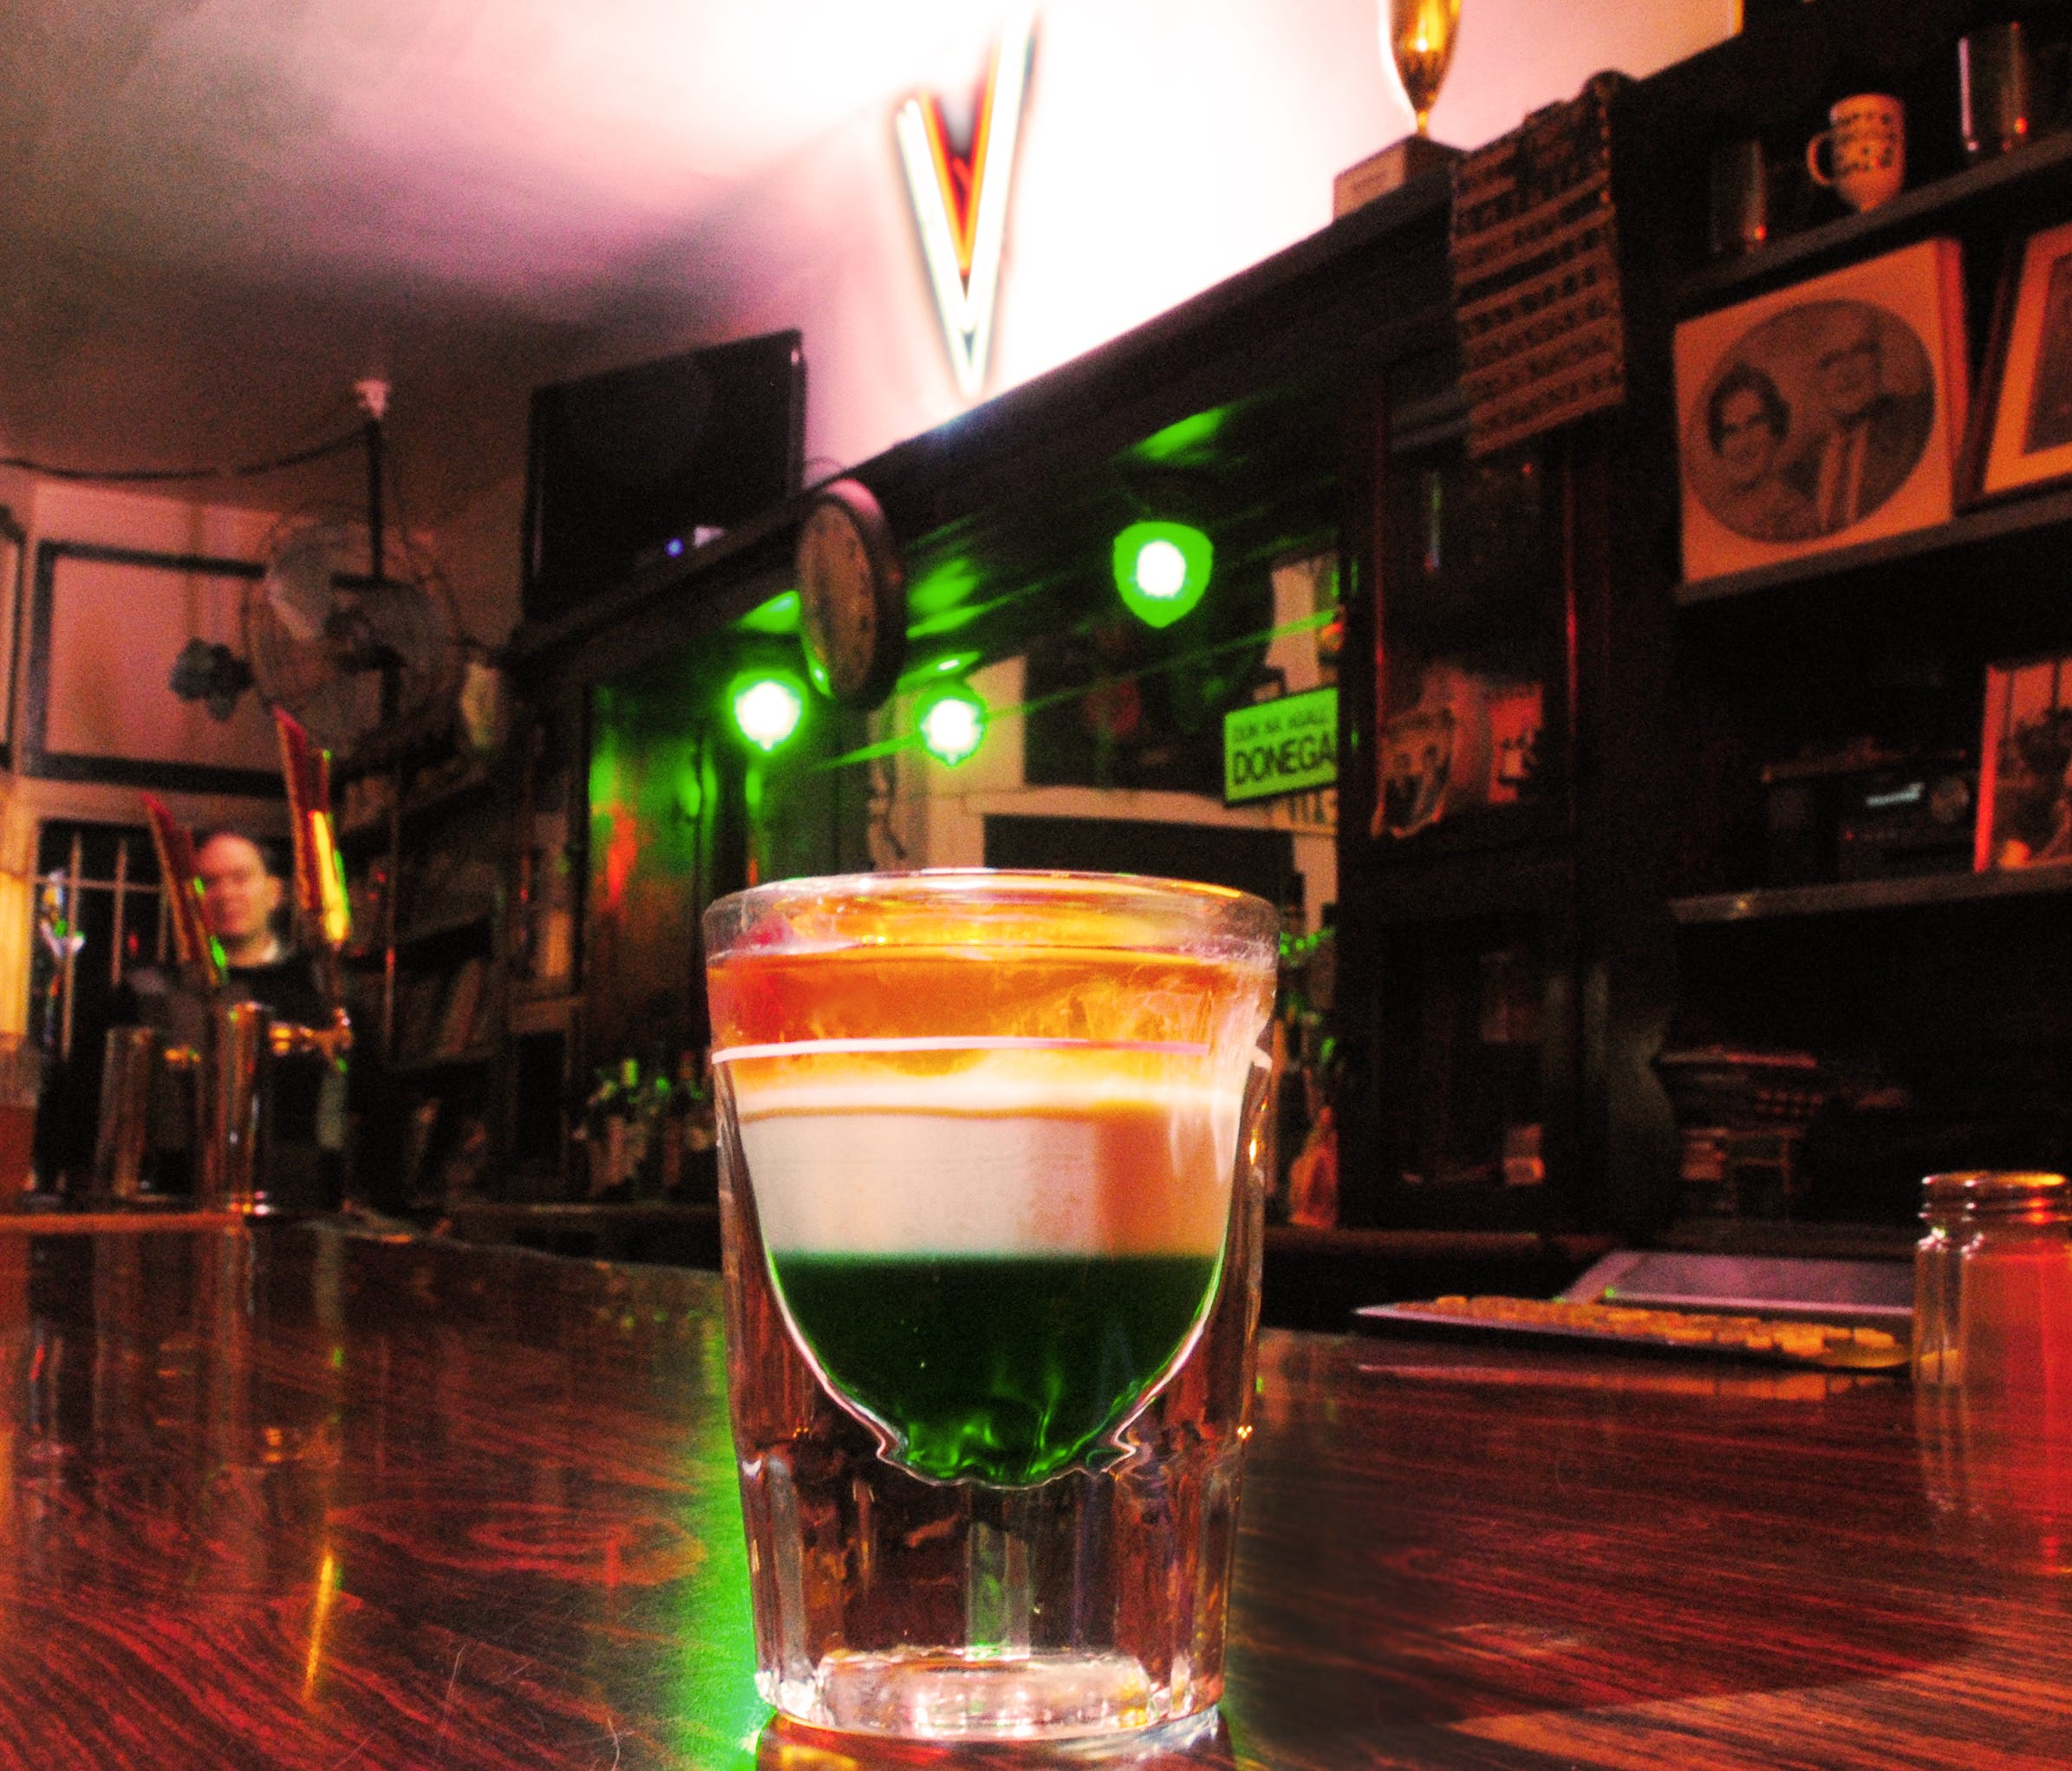 While at the Golden Ace Inn, be sure to order a signature Irish flag drink made with creme de menthe, Baileys Original Irish Cream liquor and Jameson Irish Whiskey.